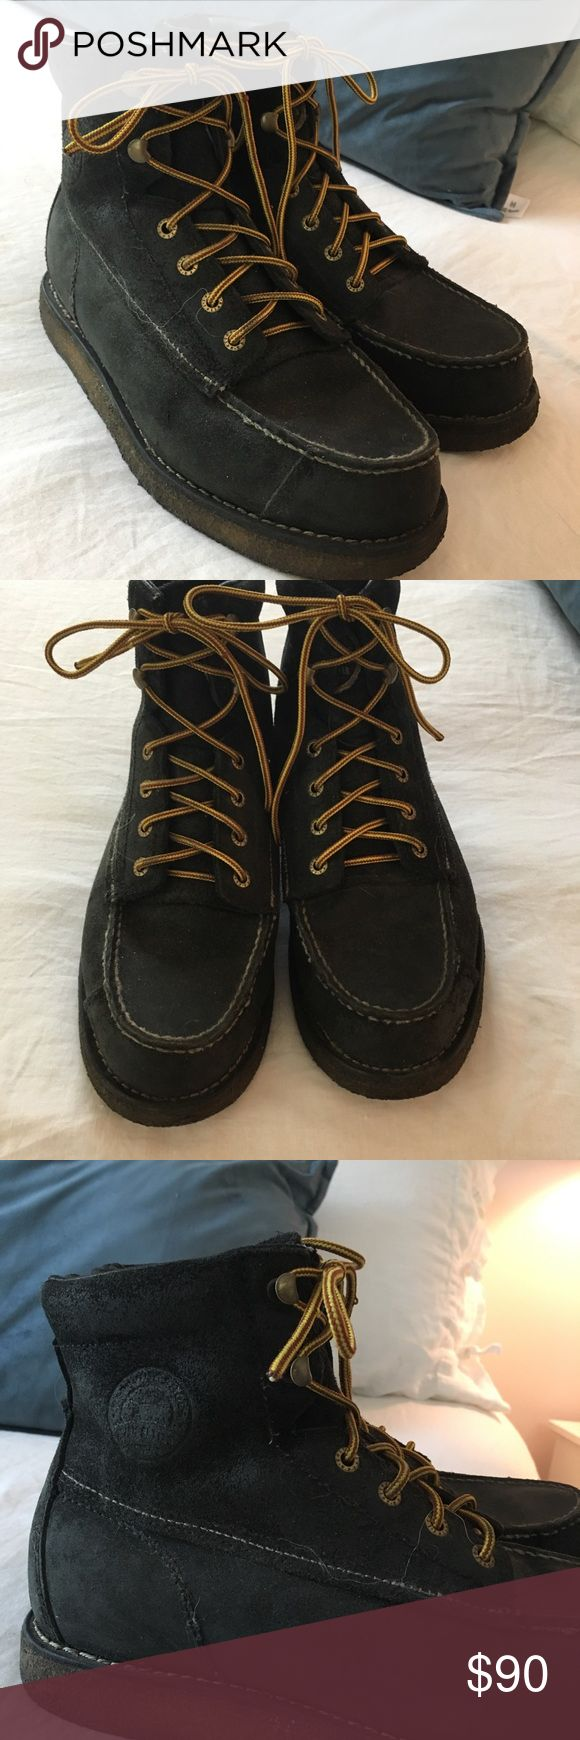 Men's Red Wing Black Boots, size 9 Men's size 9 (UK 8), authentic Red Wing Irish Setter Boots, barely worn in great condition. Red Wing Shoes Shoes Boots